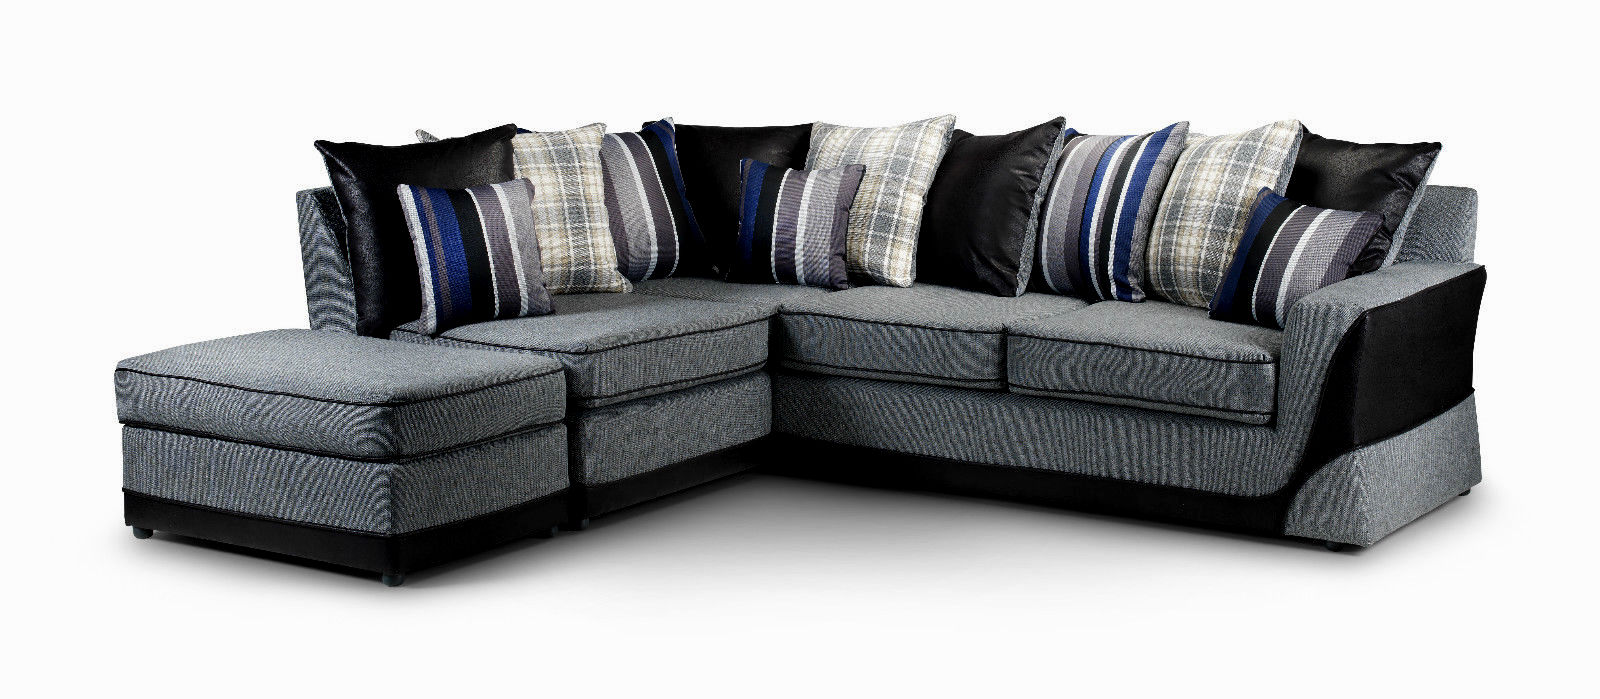 awesome down sectional sofa inspiration-Best Of Down Sectional sofa Décor